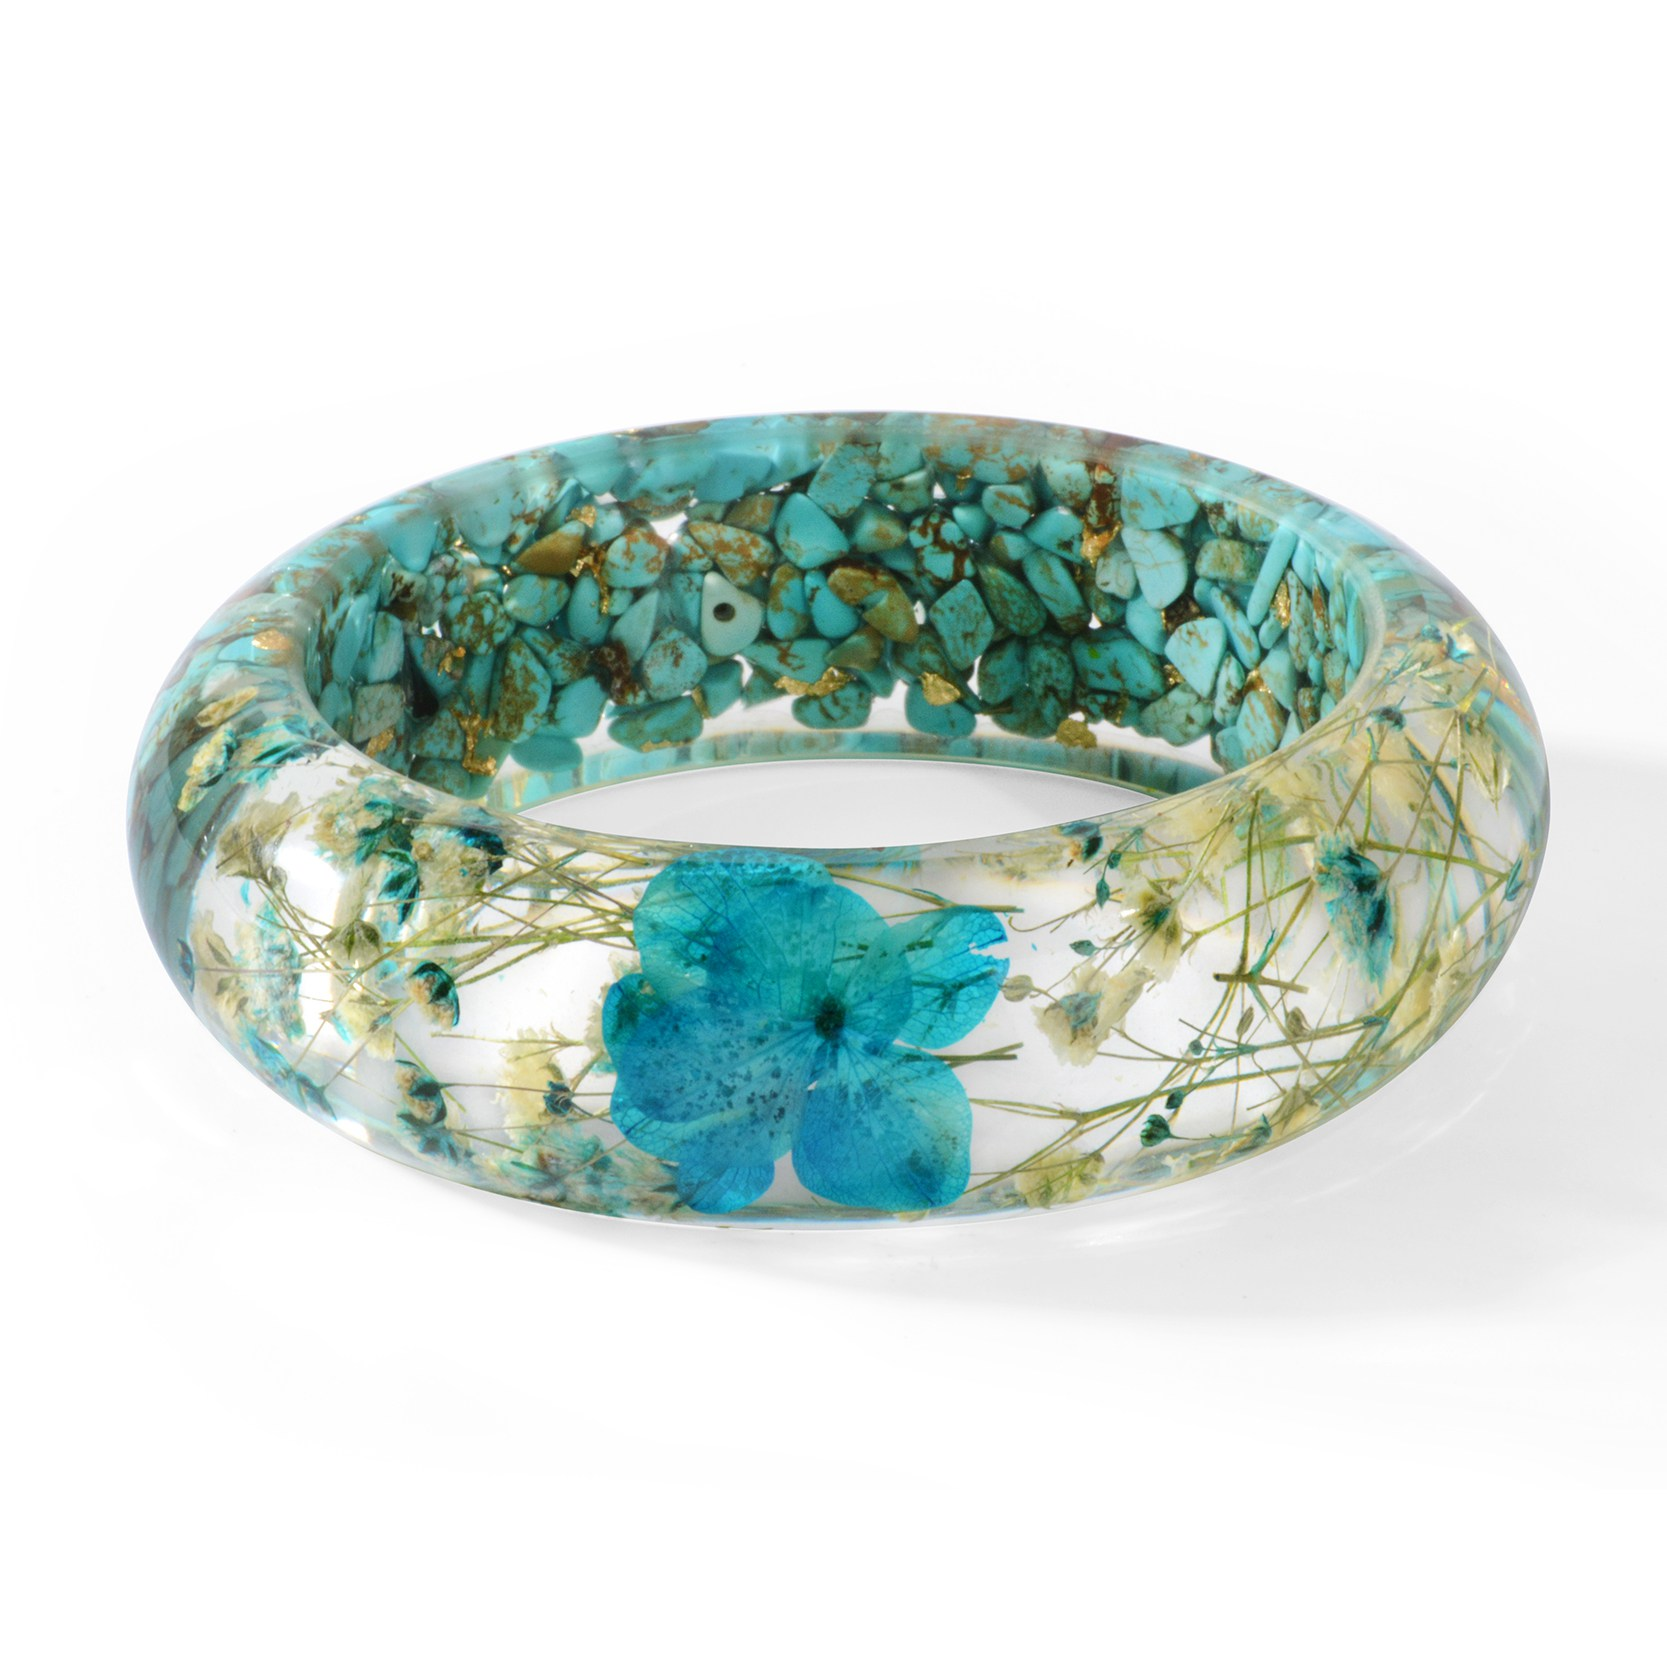 Vintage Clear Real Dried Flowers Bracelet Bangle Women Lady Fashion Jewelry Gift